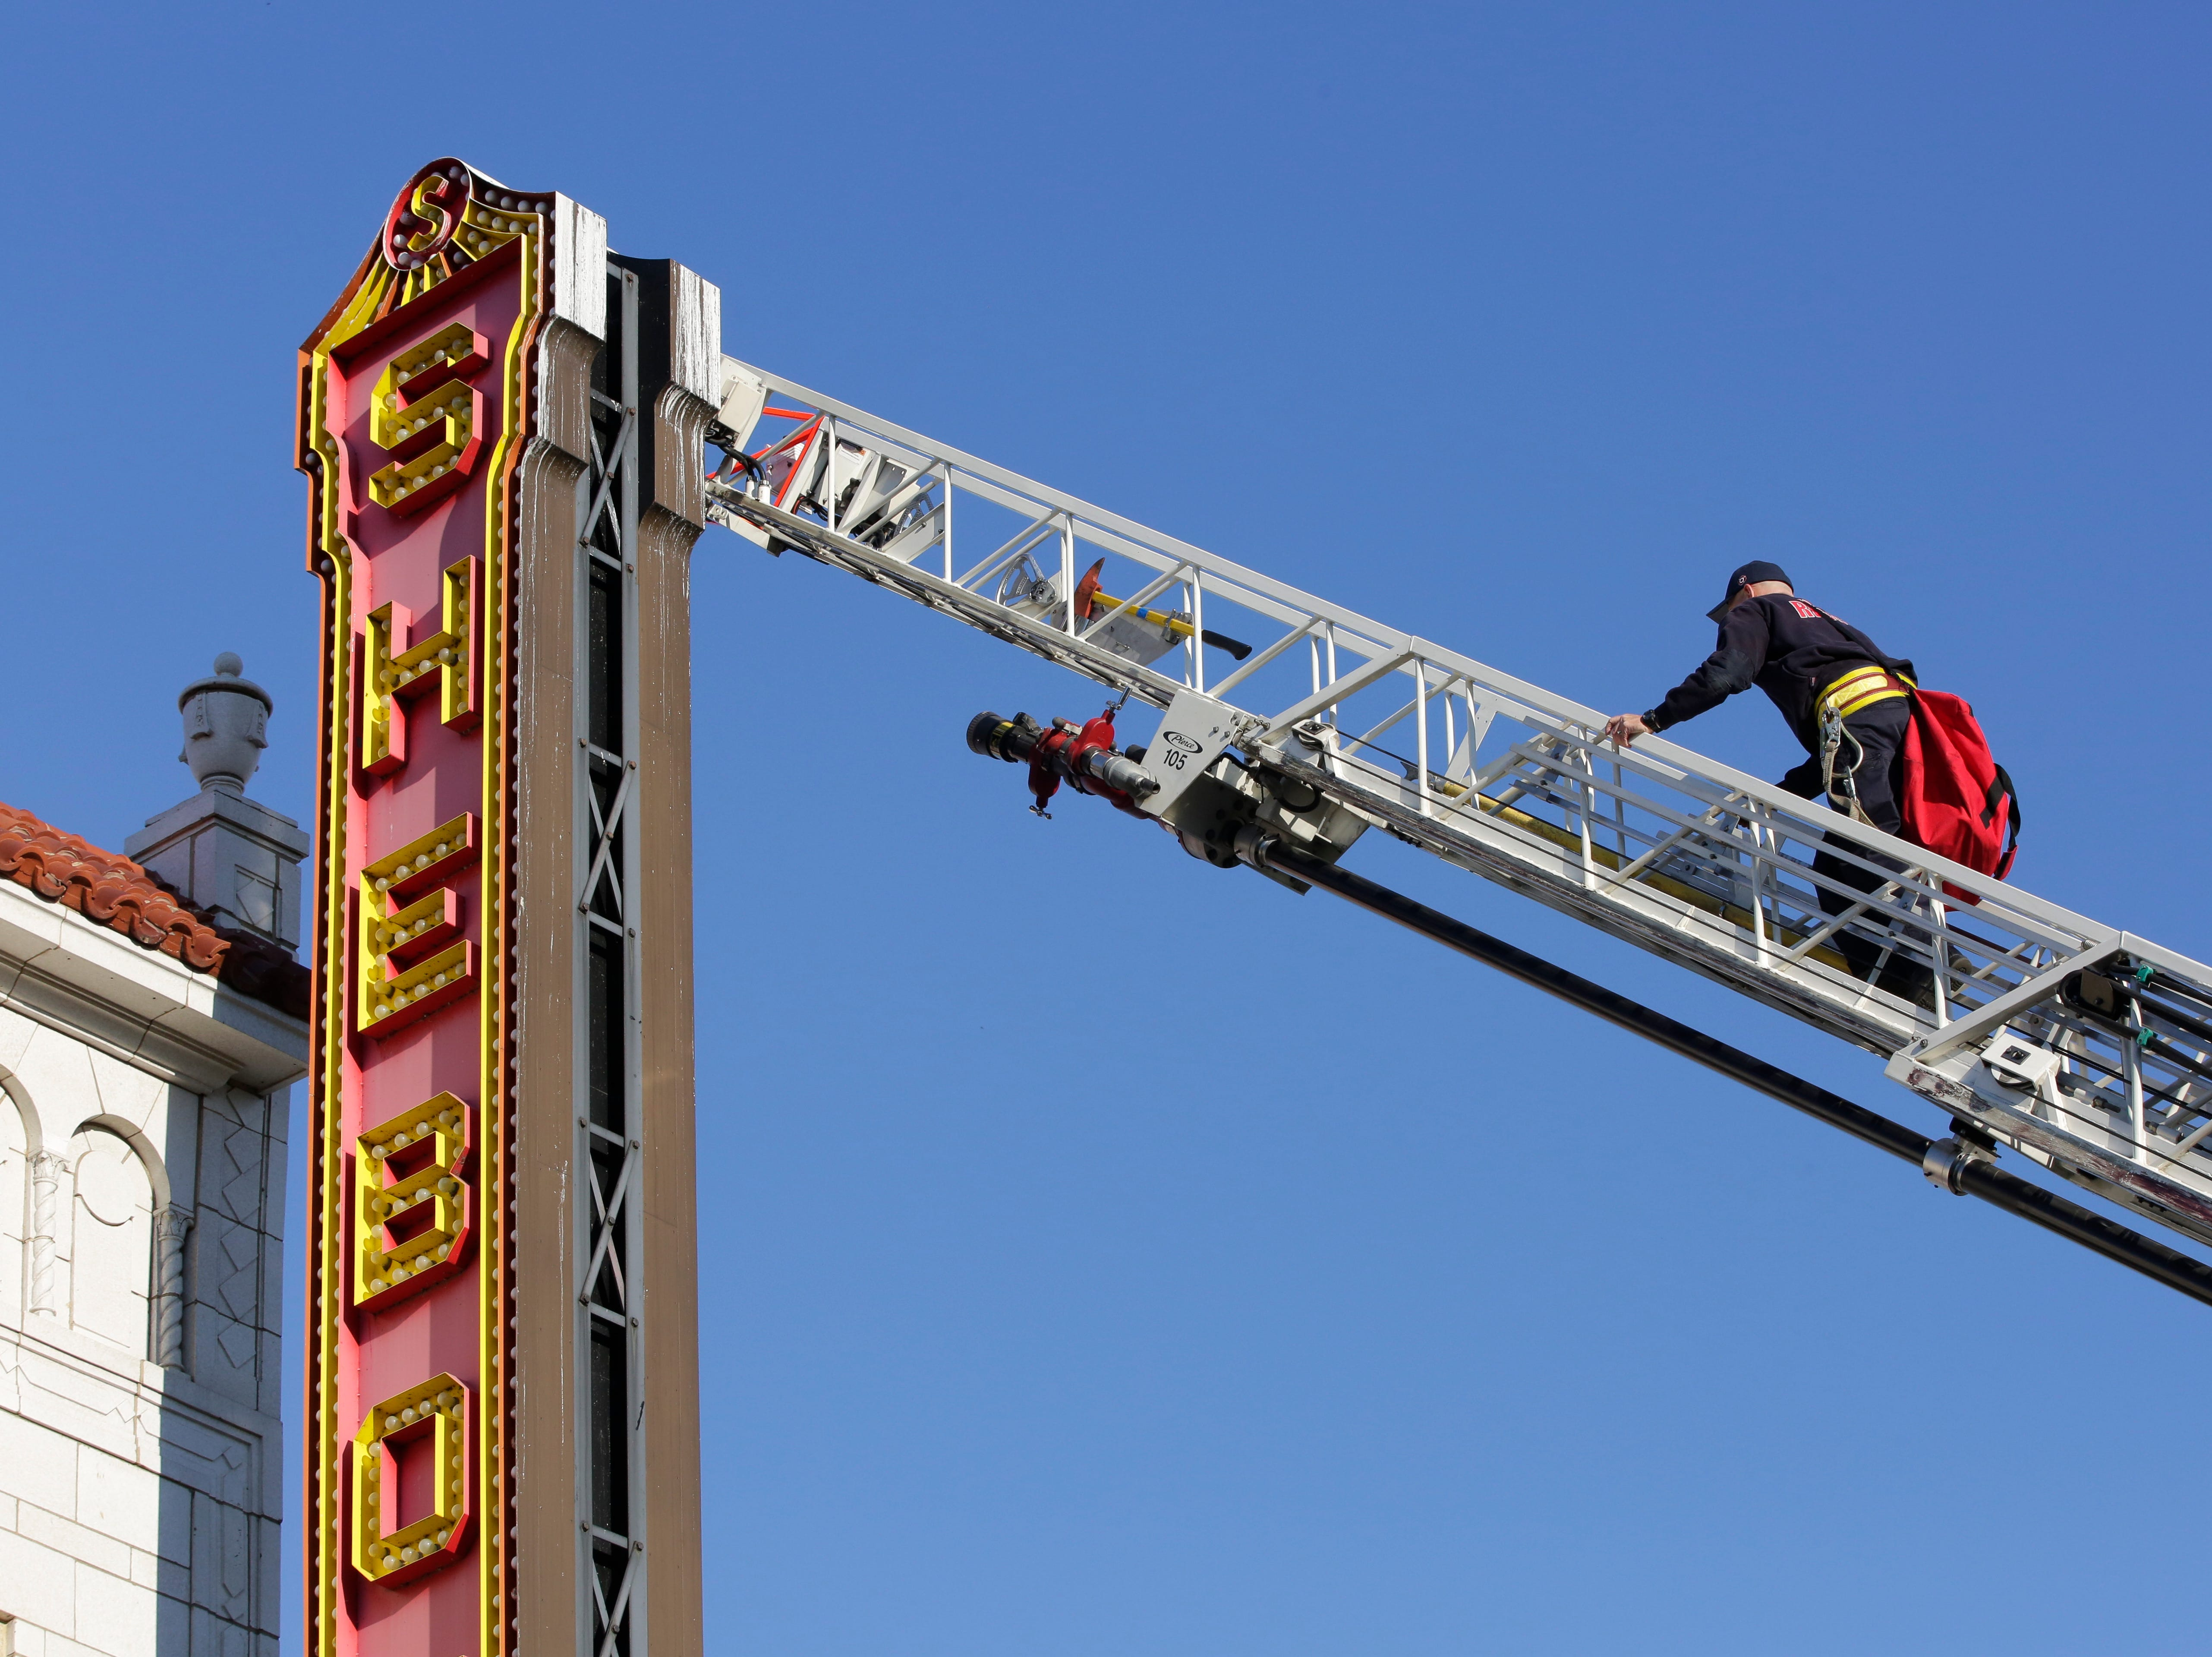 A City of Sheboygan Firefighter climbs up the ladder boom on his way to clean and install new LED lamps on the Stefanie H. Weill Center for the Performing Arts Center, Sunday, September 23, 2018, in Sheboygan, Wis. The marquee has some 3000 bulbs that will be going to LED.